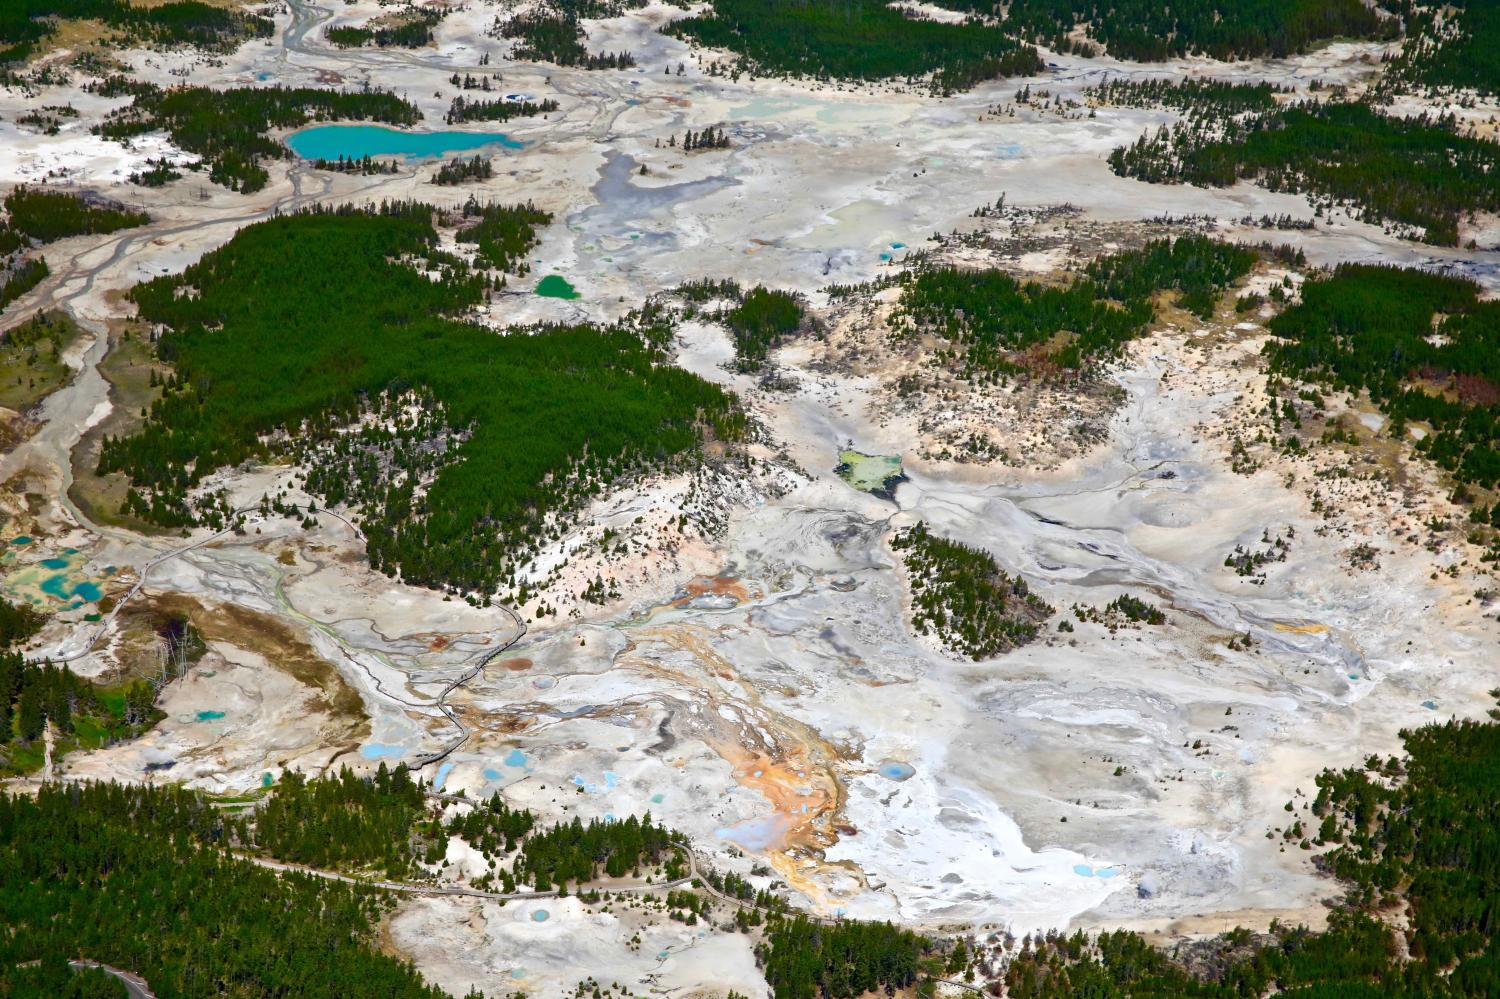 NORRIS GEYSER BASIN IN YELLOWSTONE PARK IS THE MOST ACTIVE GEO-THERMAL AREA IN THE PARK-I MONITOR THIS AREA AS THE FIRST PLACE I GO EVERY TIME I FLY OVER THE PARK-THIS IS THE AREA WHERE MAGMA WOULD BREAK THROUGH FIRST IF THERE WAS A MAGMA EVENT